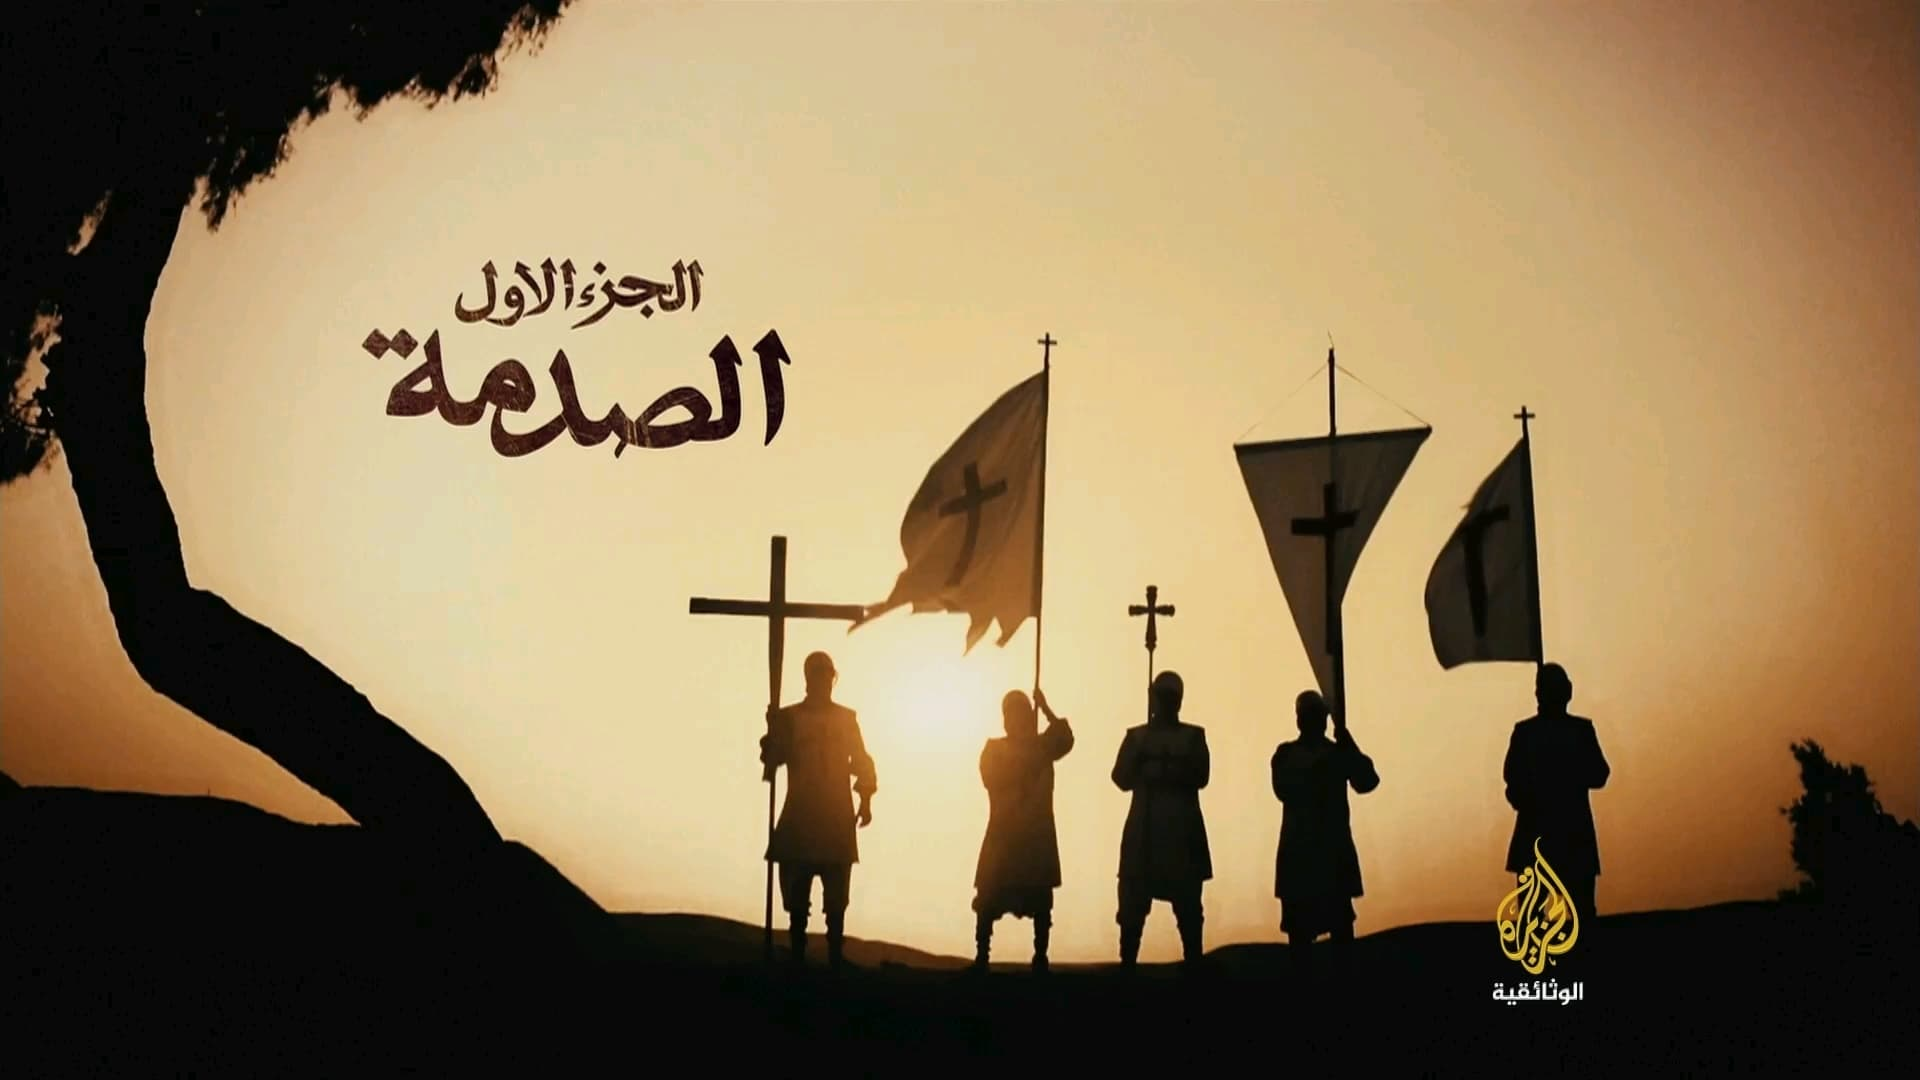 a research on the series of crusades The crusades crescent and the cross pt 1 of 2 [full documentary] - youtubeflv - продолжительность: 1:29:27 peace4universe 238 278 просмотров.